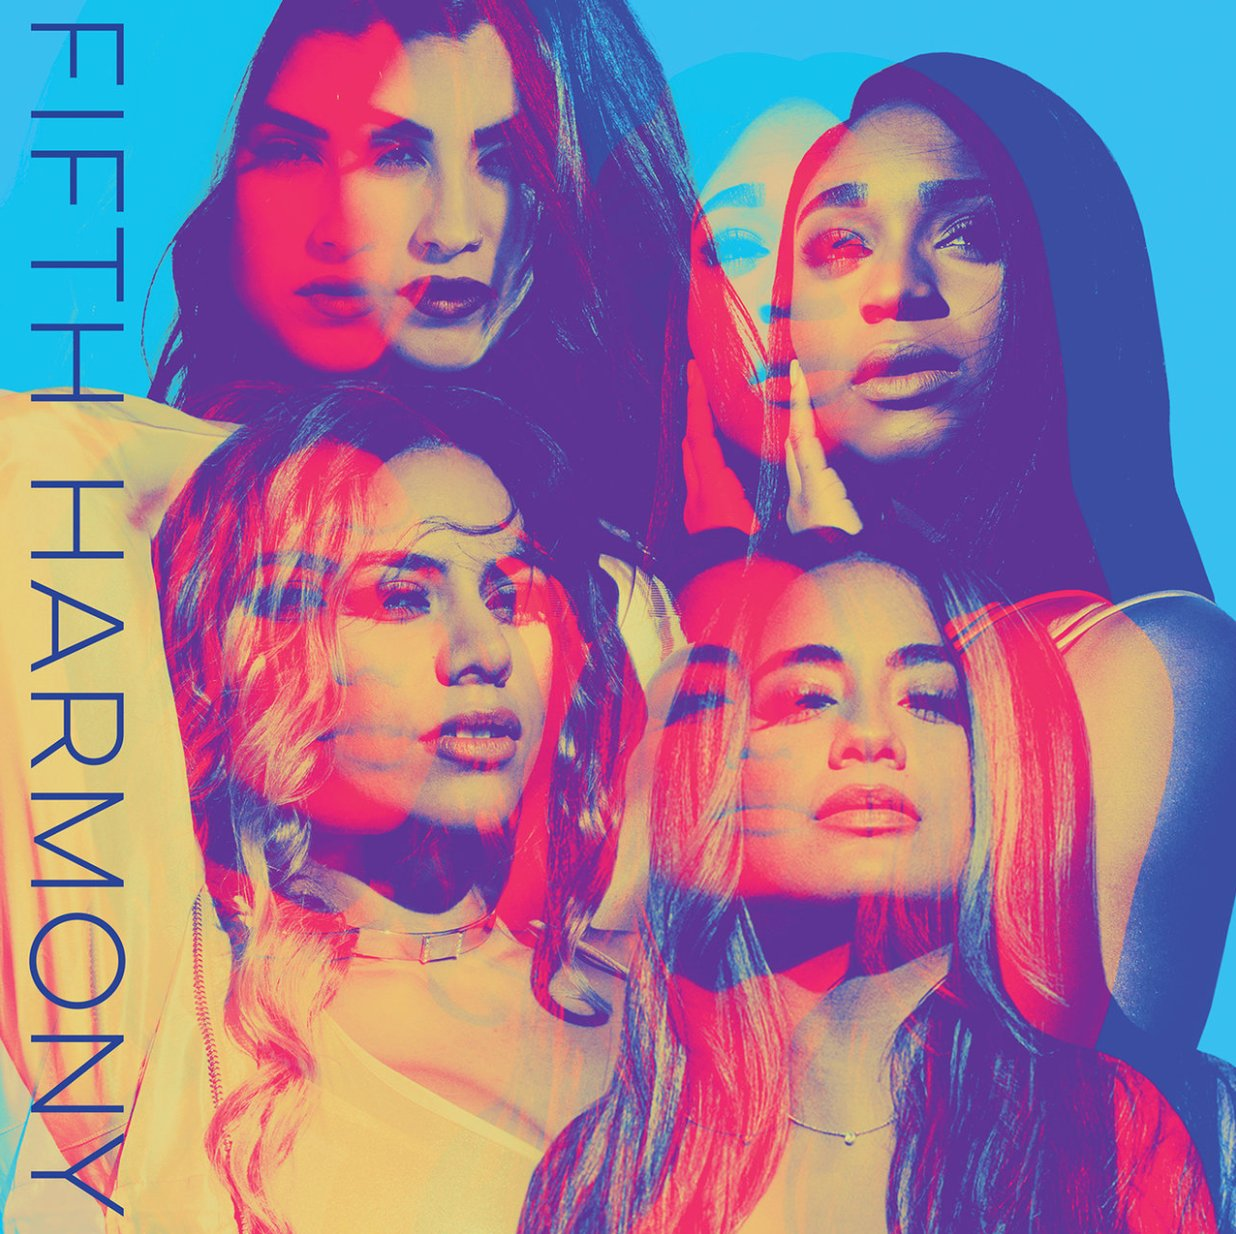 .@FifthHarmony keep it �� on their new track 'Angel': https://t.co/3oRwZx8kOr https://t.co/iXHOEGeCkU